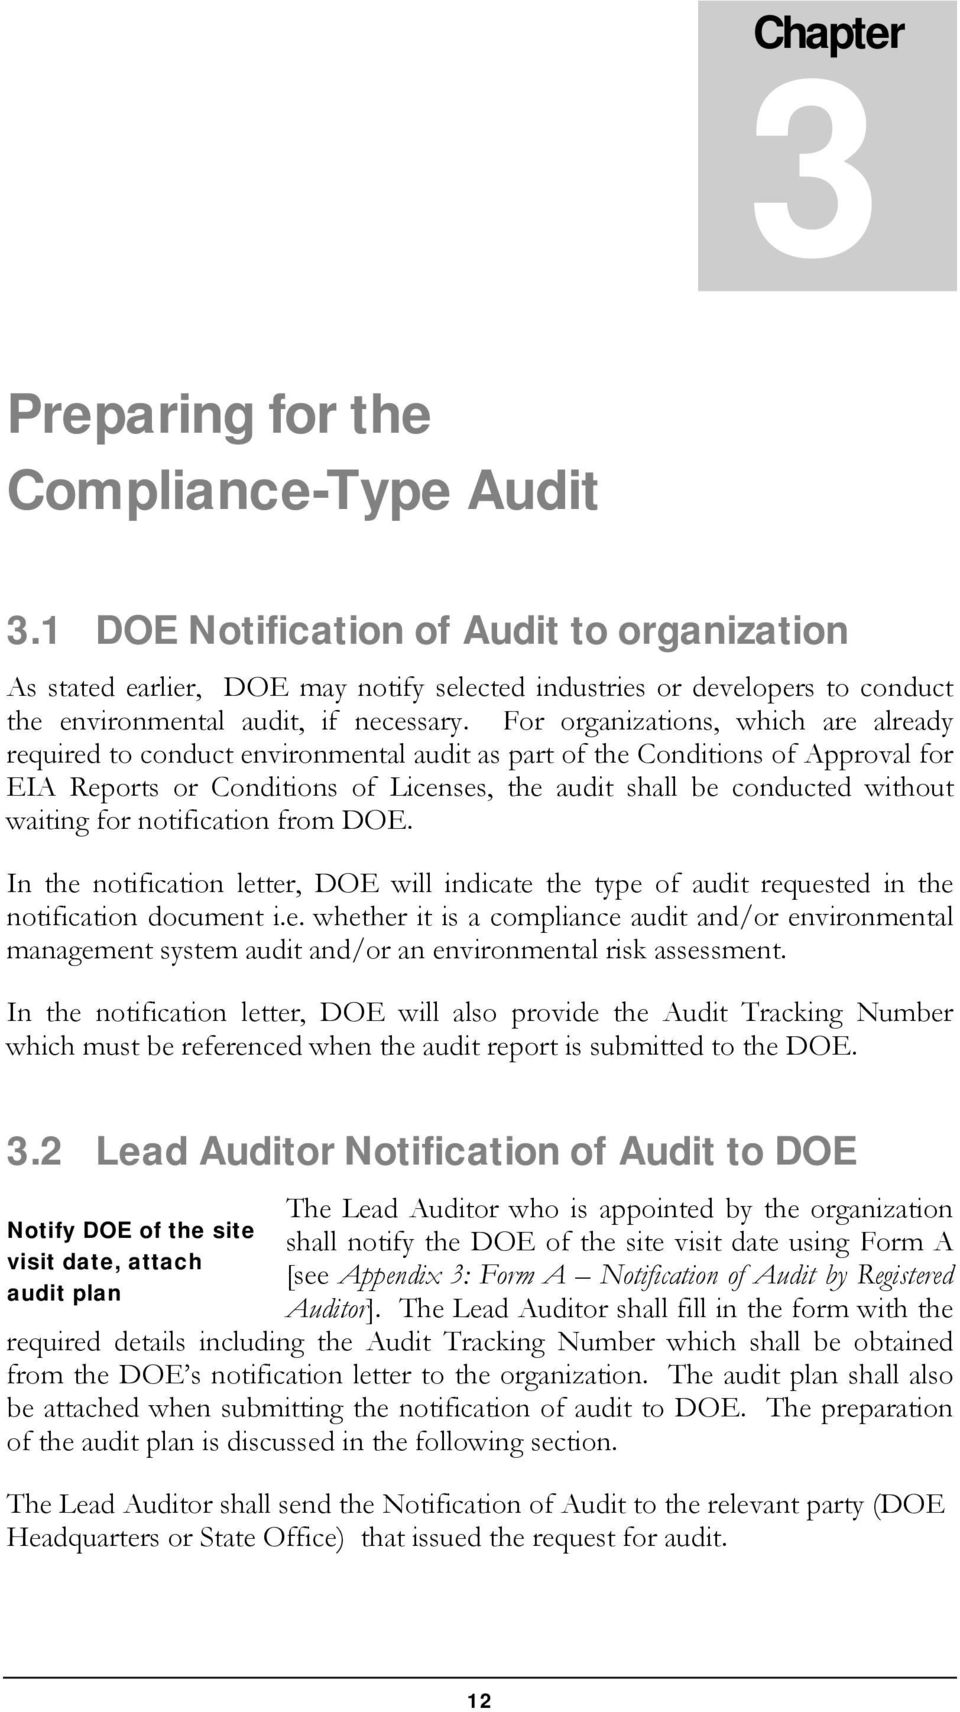 For organizations, which are already required to conduct environmental audit as part of the Conditions of Approval for EIA Reports or Conditions of Licenses, the audit shall be conducted without